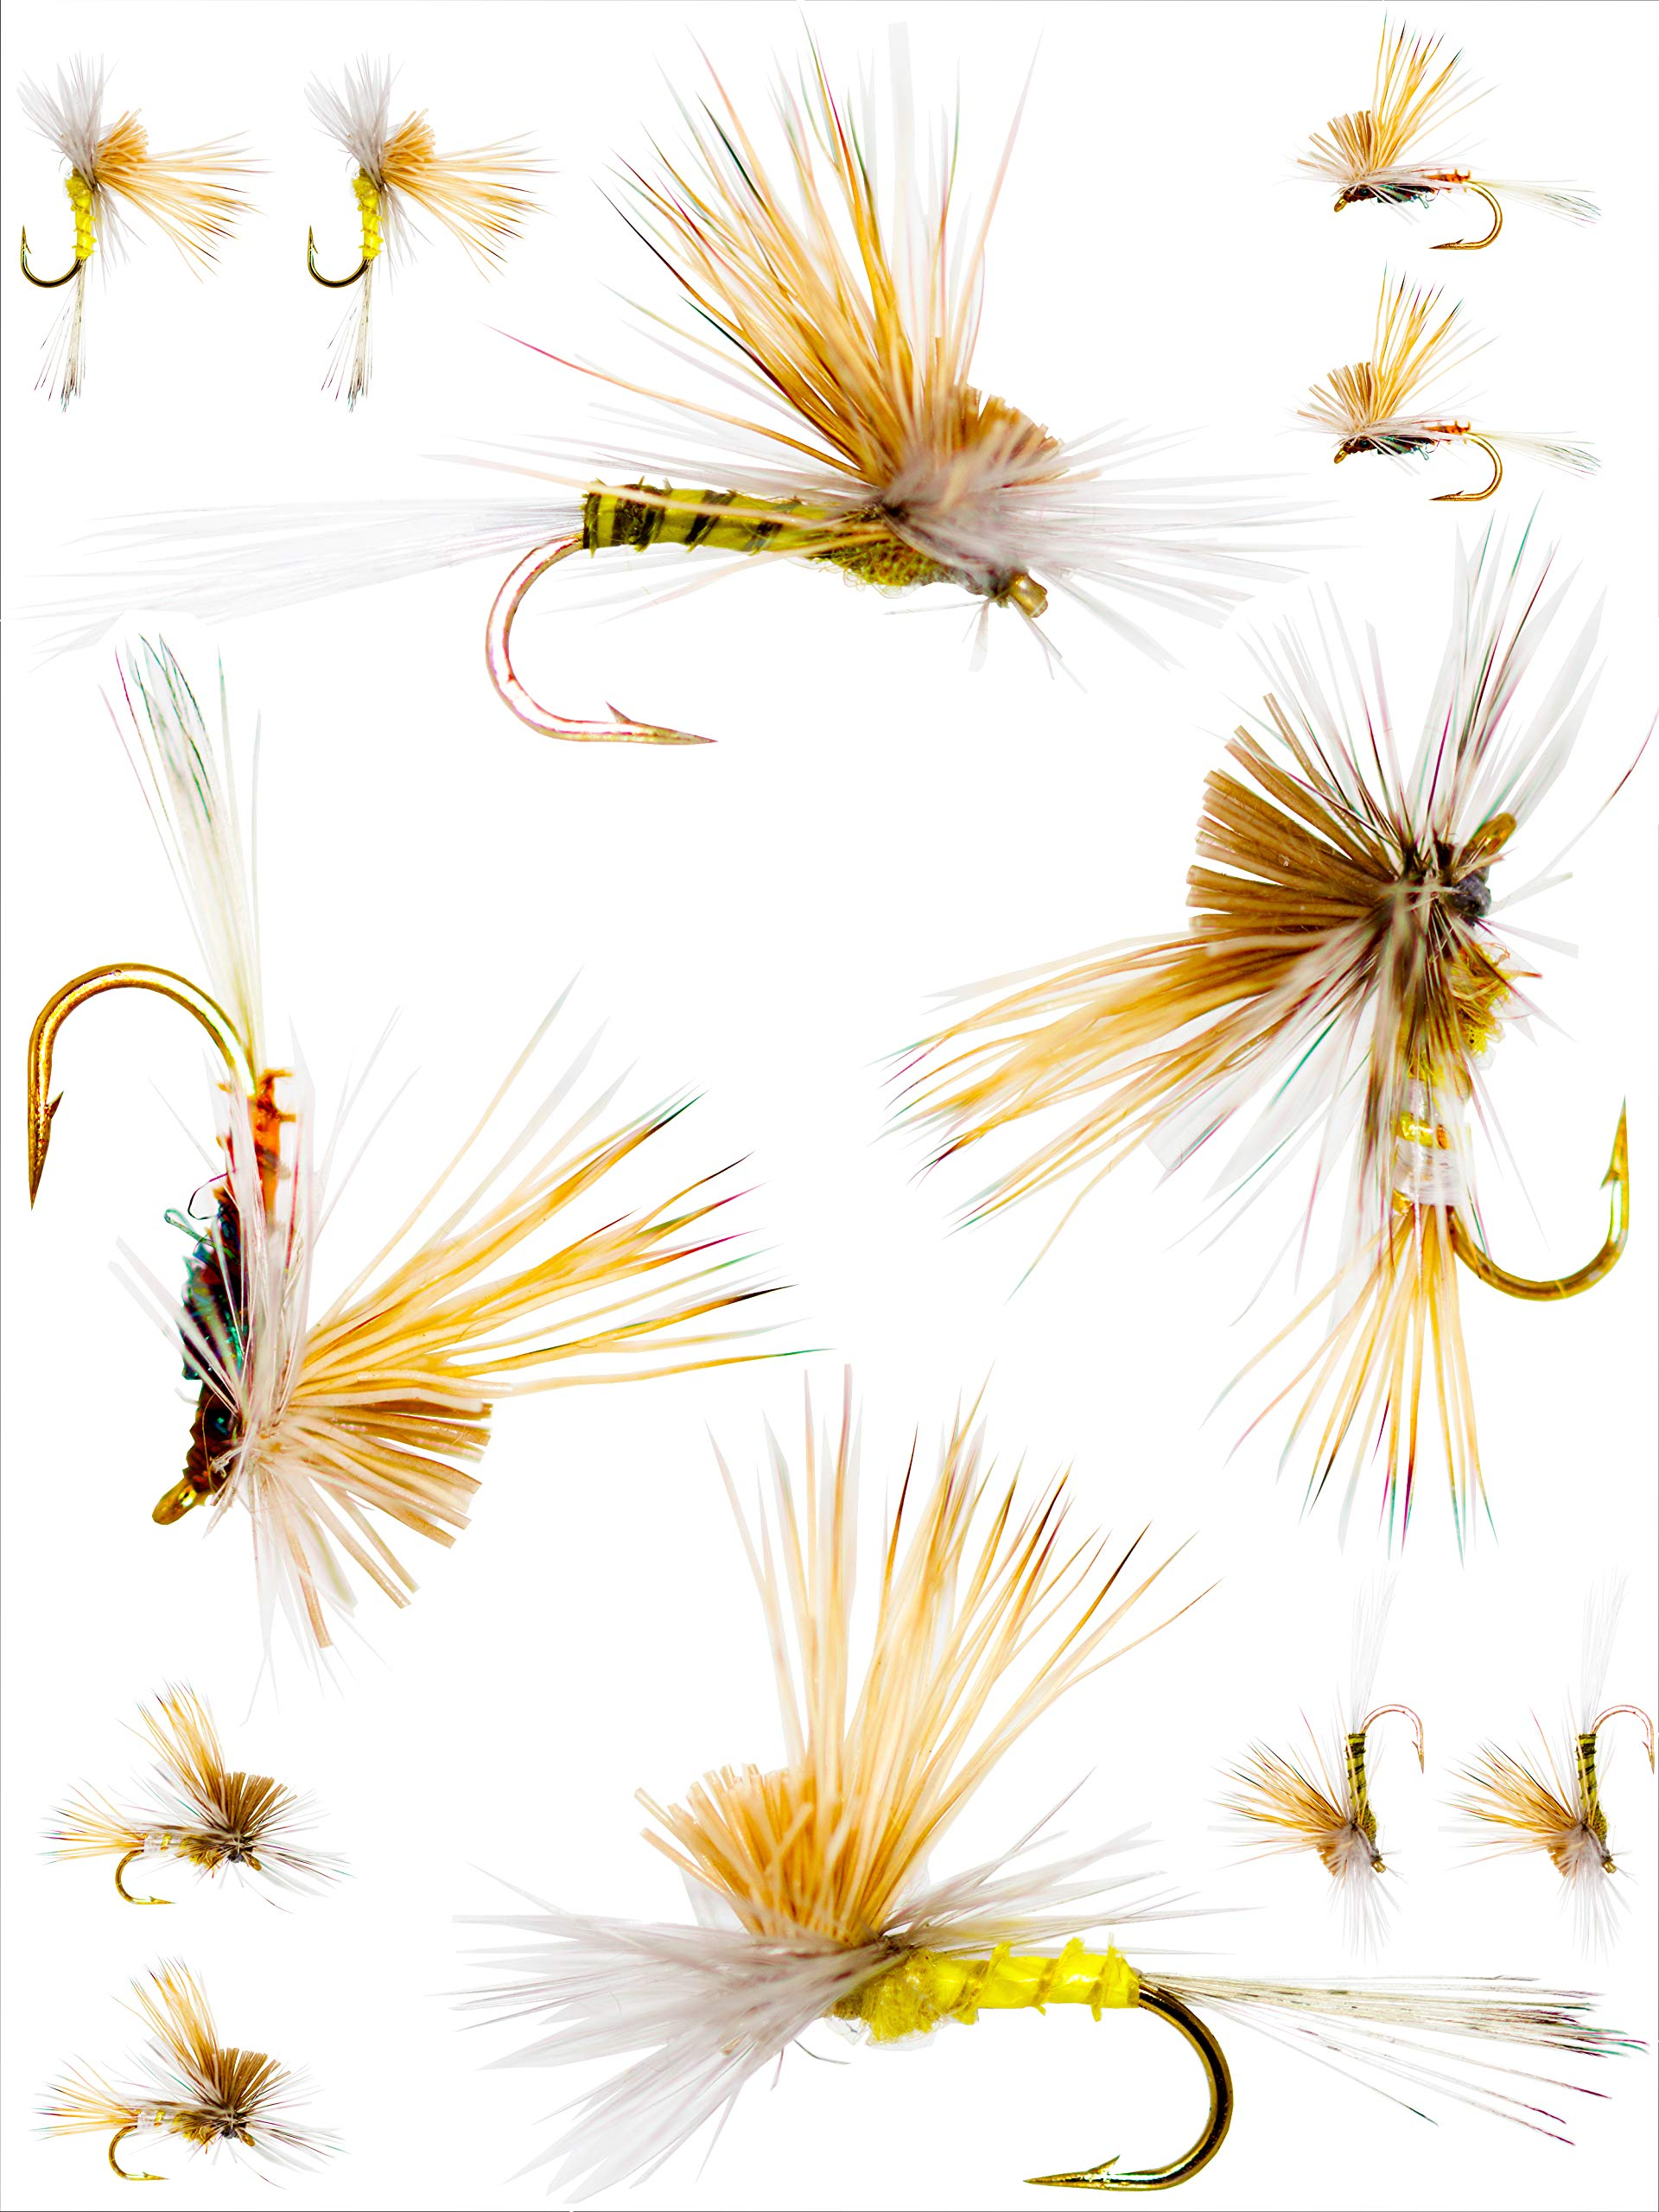 Outdoor Planet 12 Tilt Wing Dun Caddis Mayfly Dry Flies for Trout Fly Fishing Flies Lure Assortment by Outdoor Planet